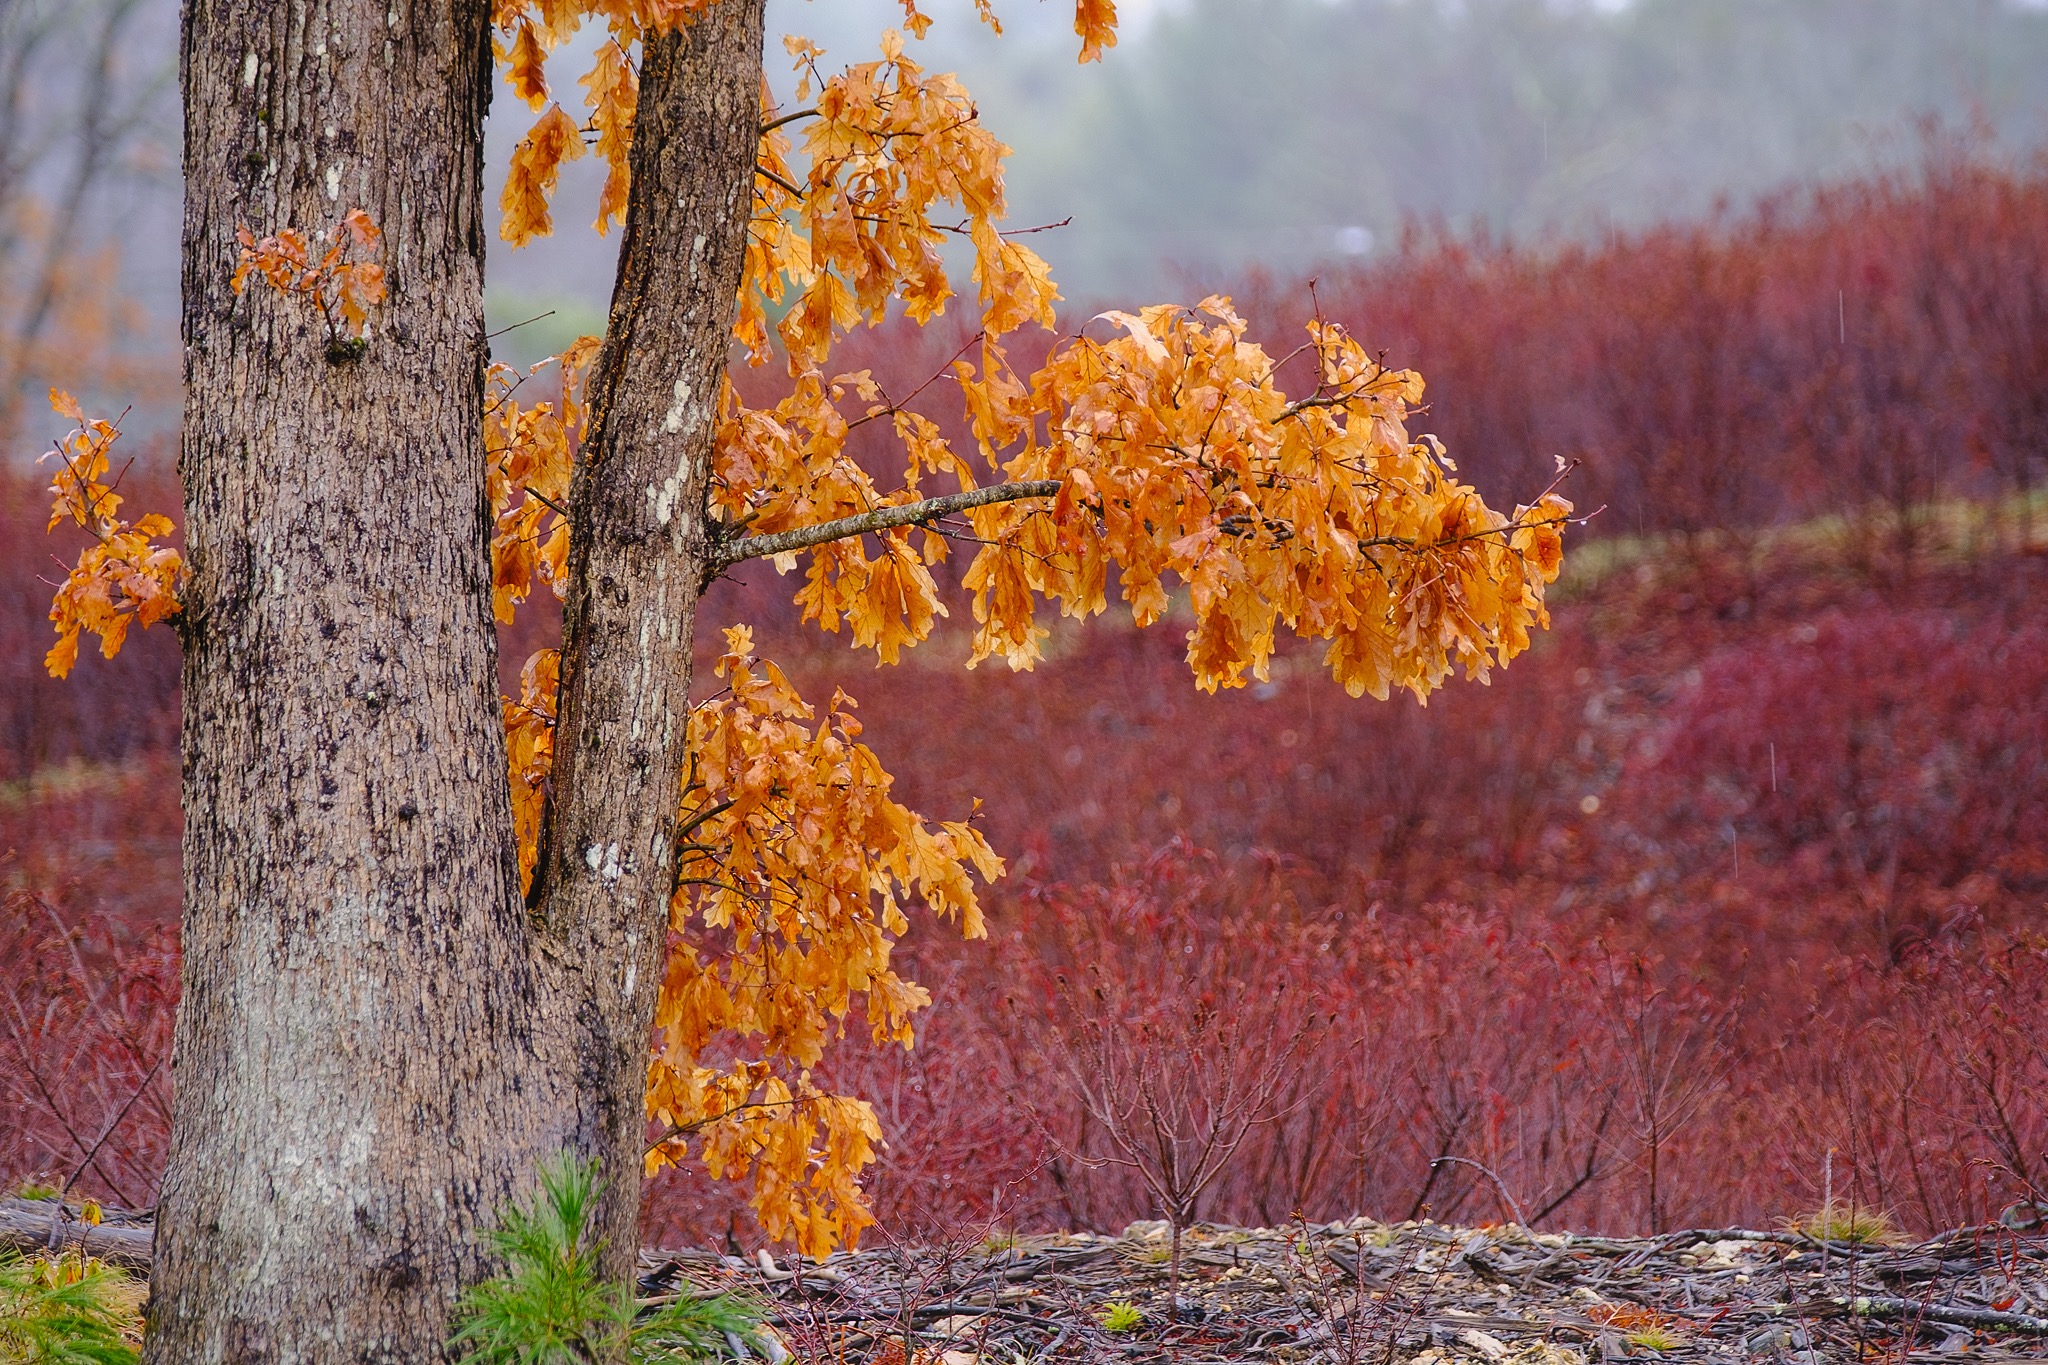 The base of an oak tree with a few small branches full of golden leaves on a rainy day. Reddish brush fills the background.